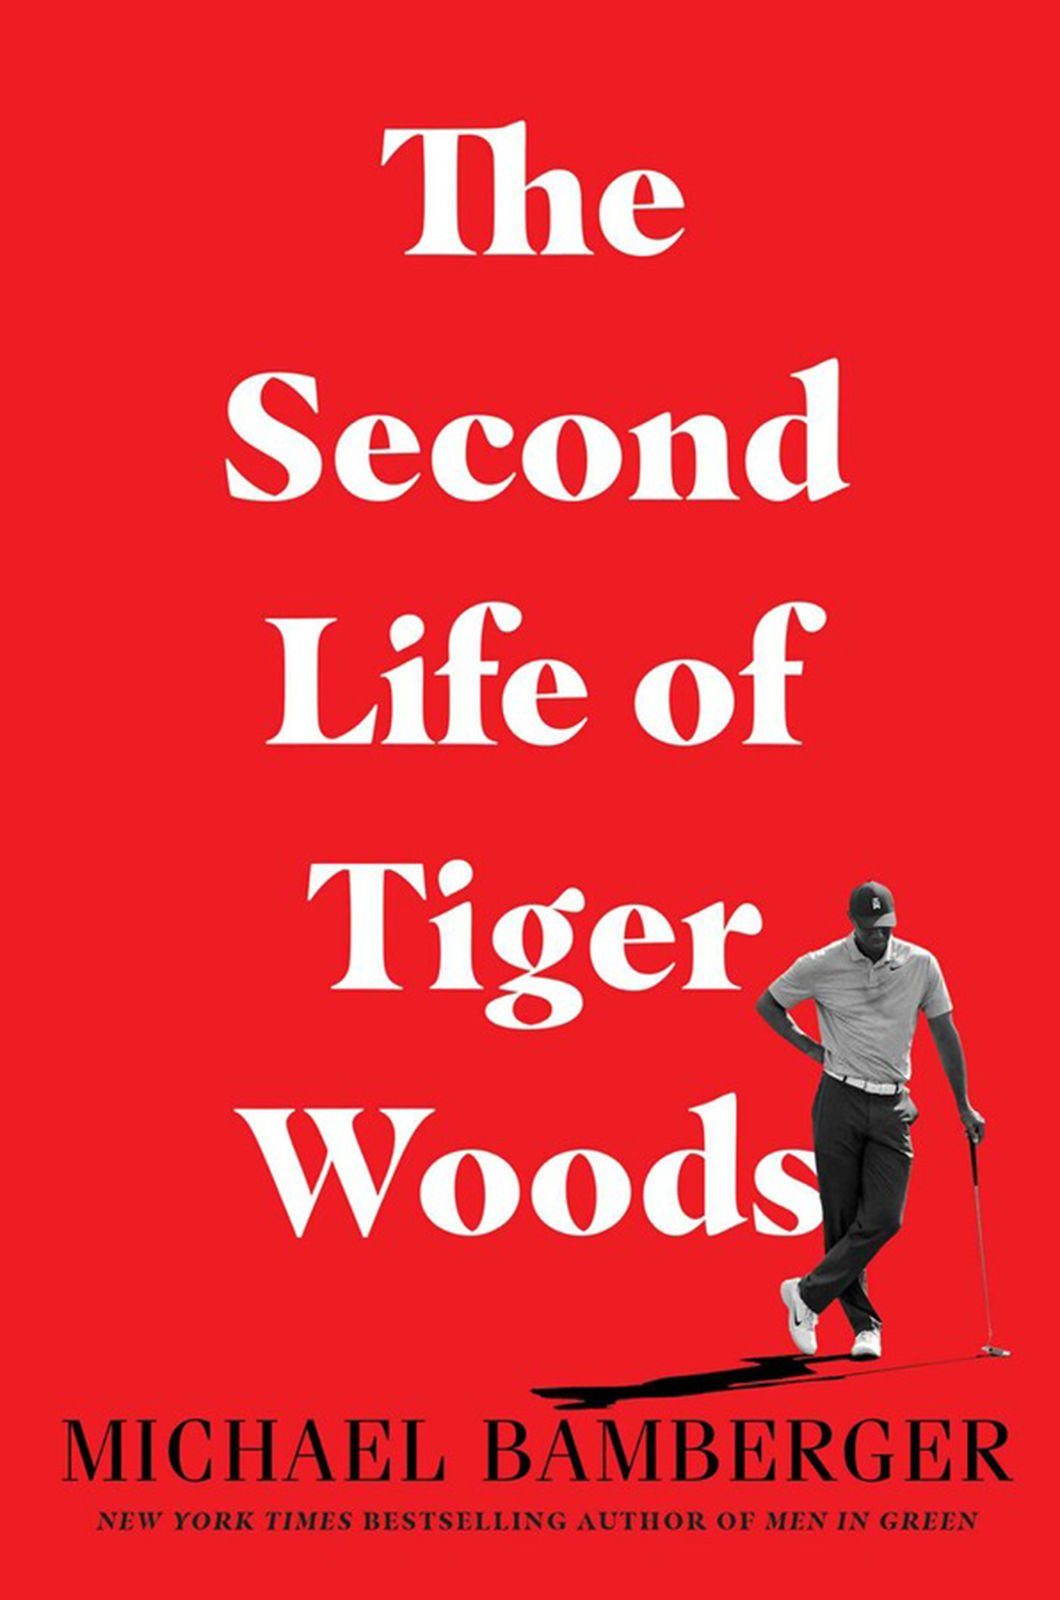 BOOKS-BOOK-SECONDLIFE-TIGERWOODS-REVIEW-MCT